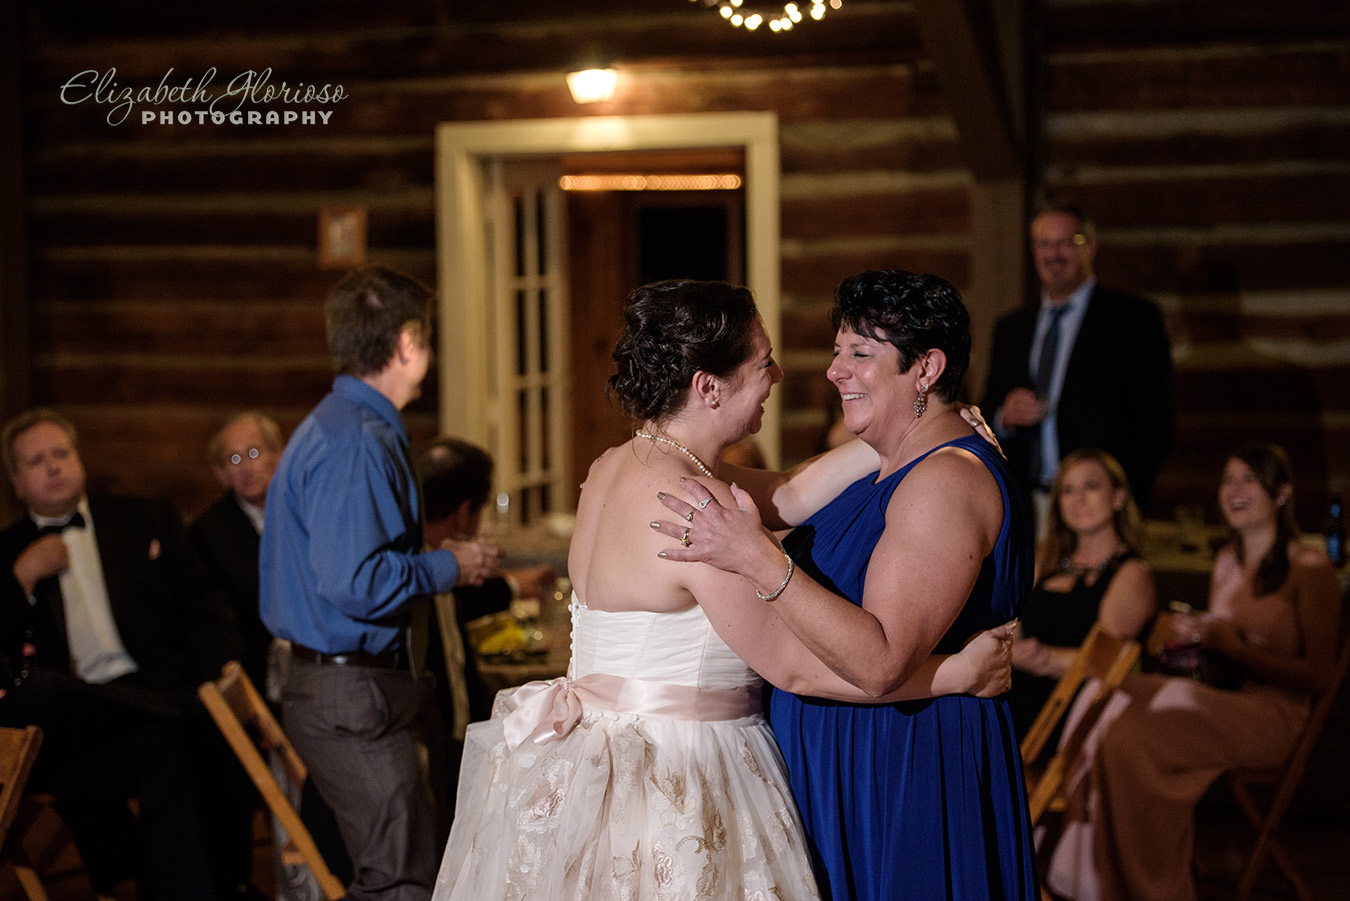 Vermilion_wedding_Glorioso Photography_1047